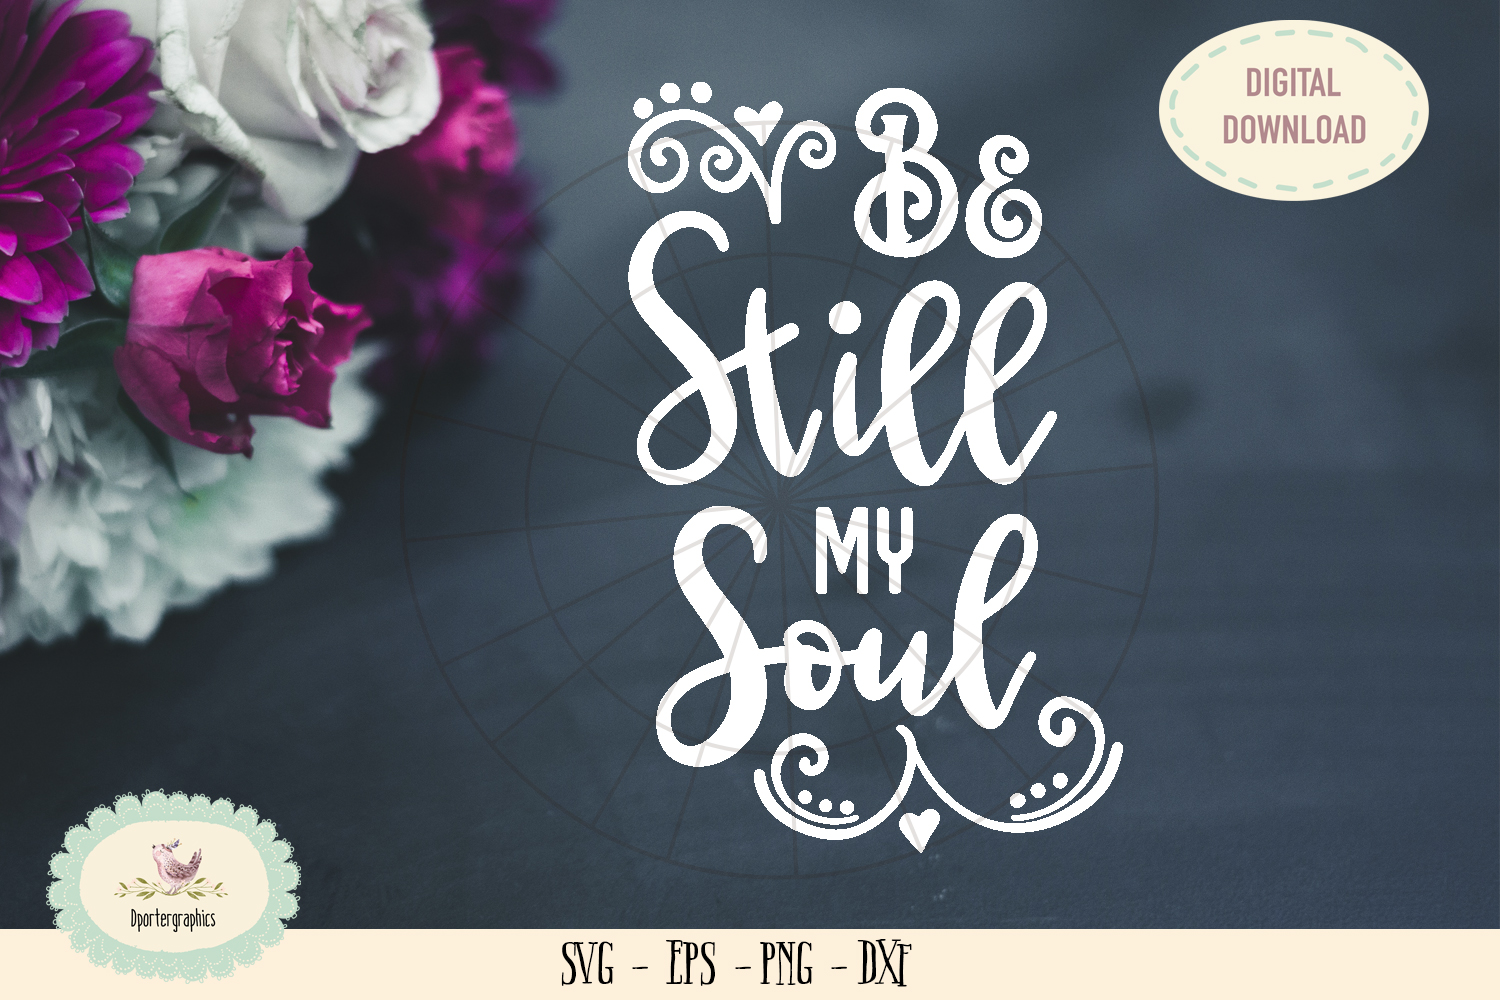 Be still my soul bible saying SVG cut file example image 1